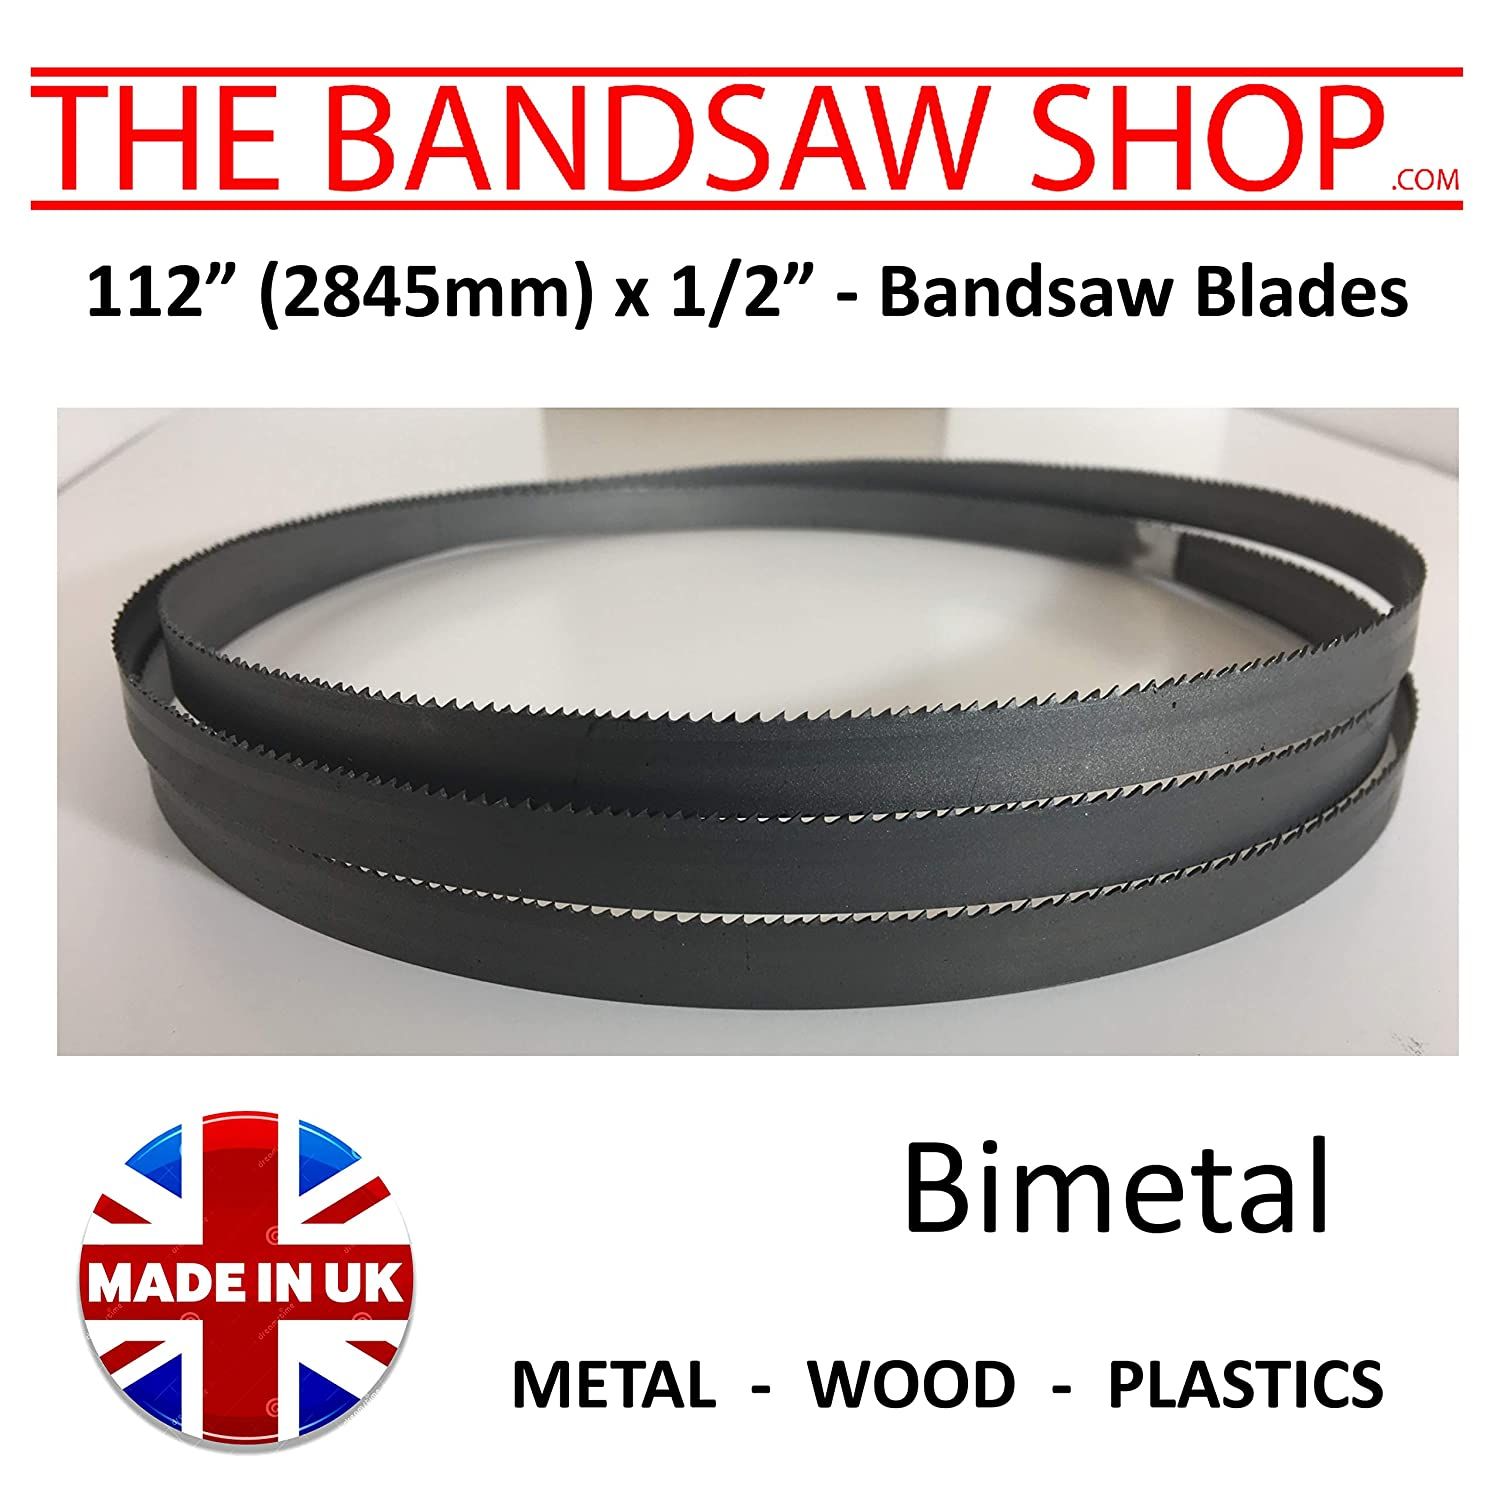 88.1//4 Axcaliber Ground Tooth Bandsaw Blade 2,240mm x 12.7mm 10 Tpi